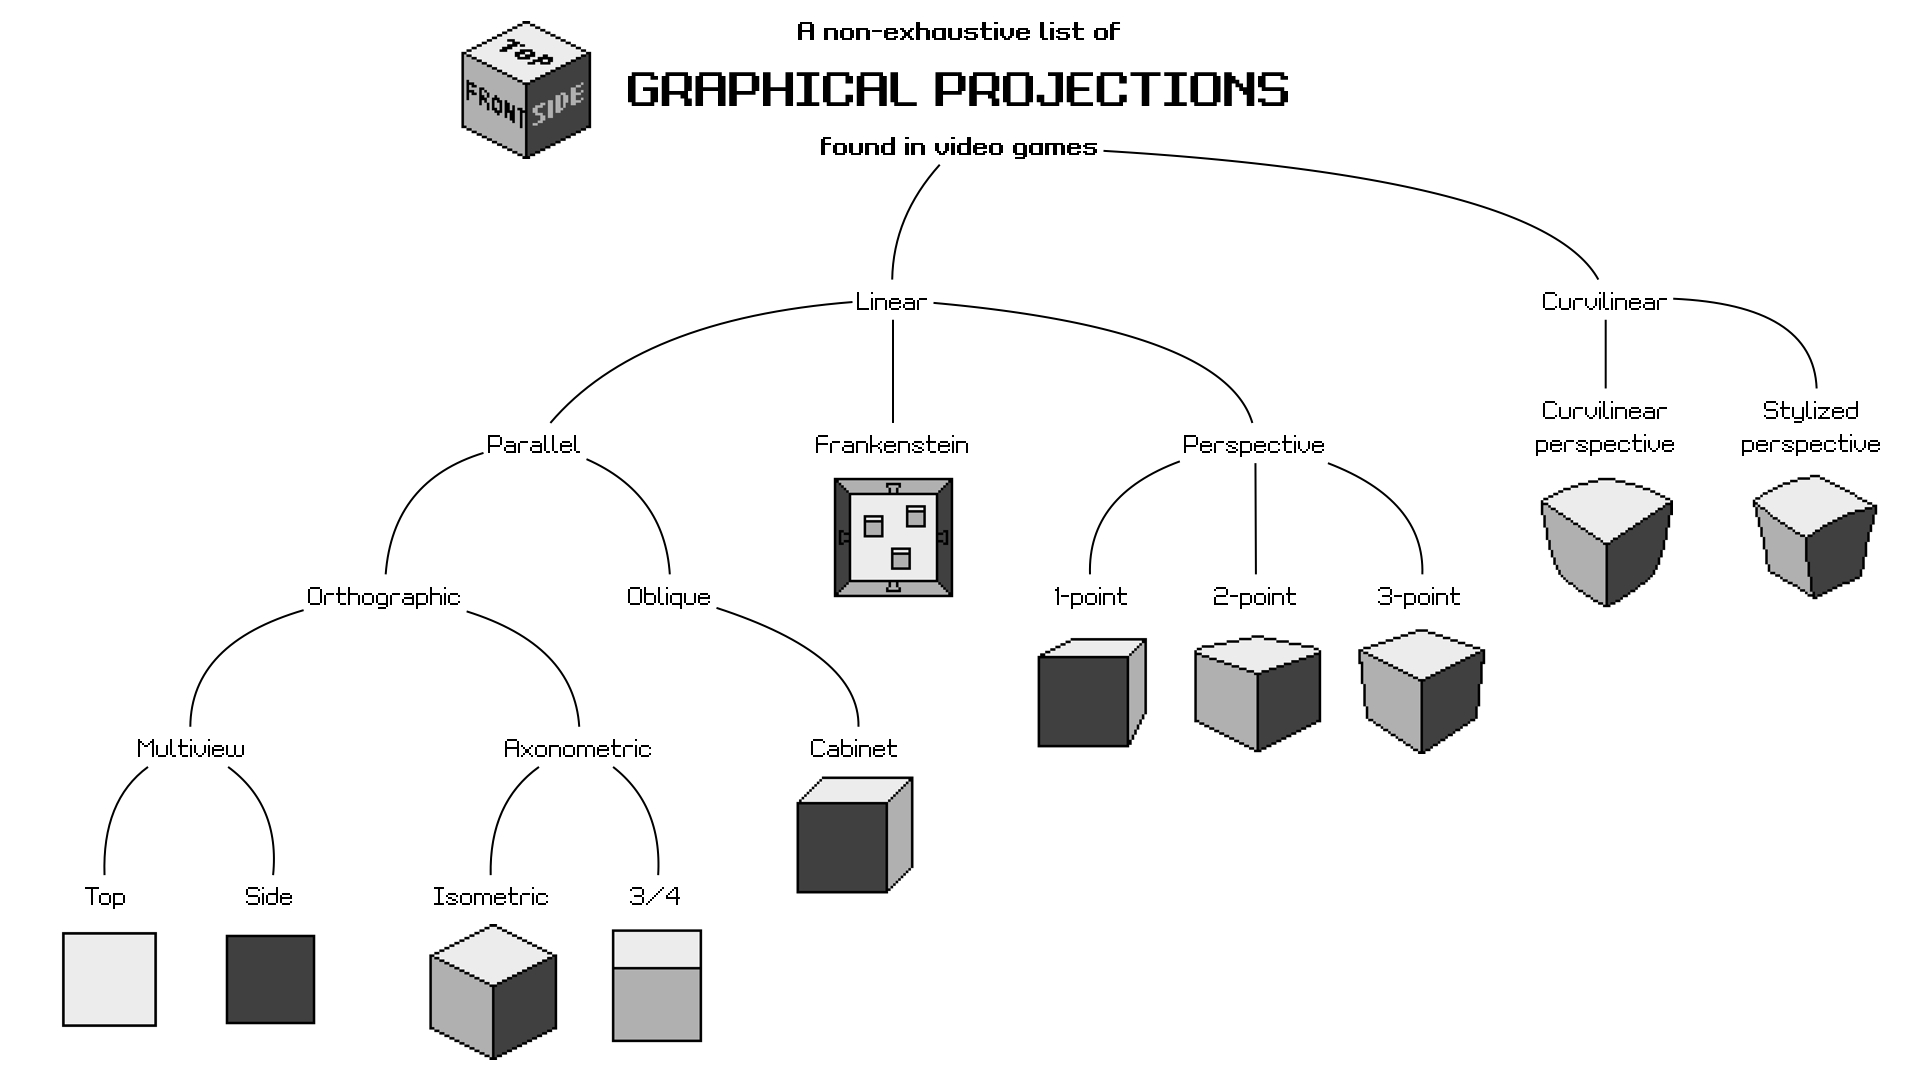 1920x1080 game developer's guide to graphical projections - Multiview Drawing Examples